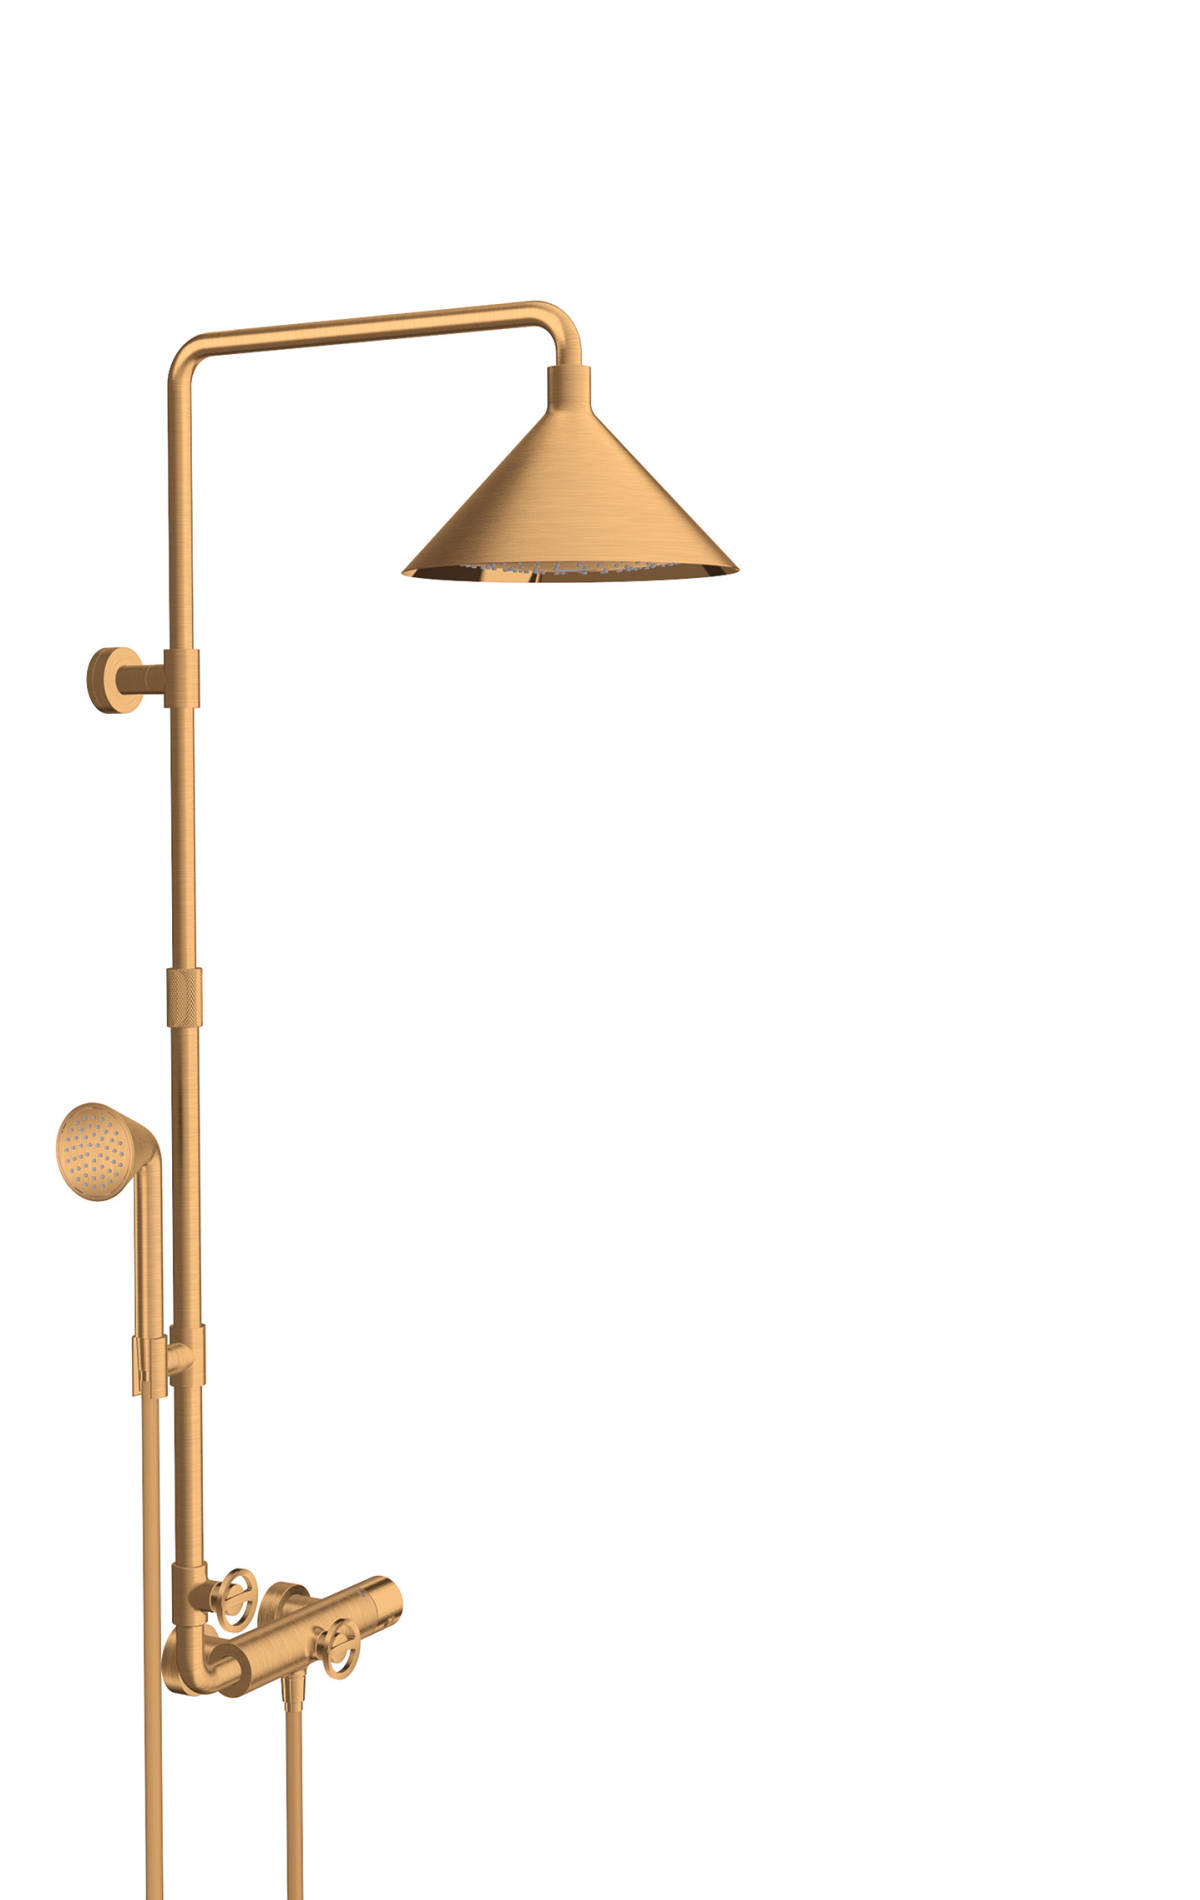 Showerpipe with thermostat and overhead shower 240 2jet, Brushed Gold Optic, 26020250